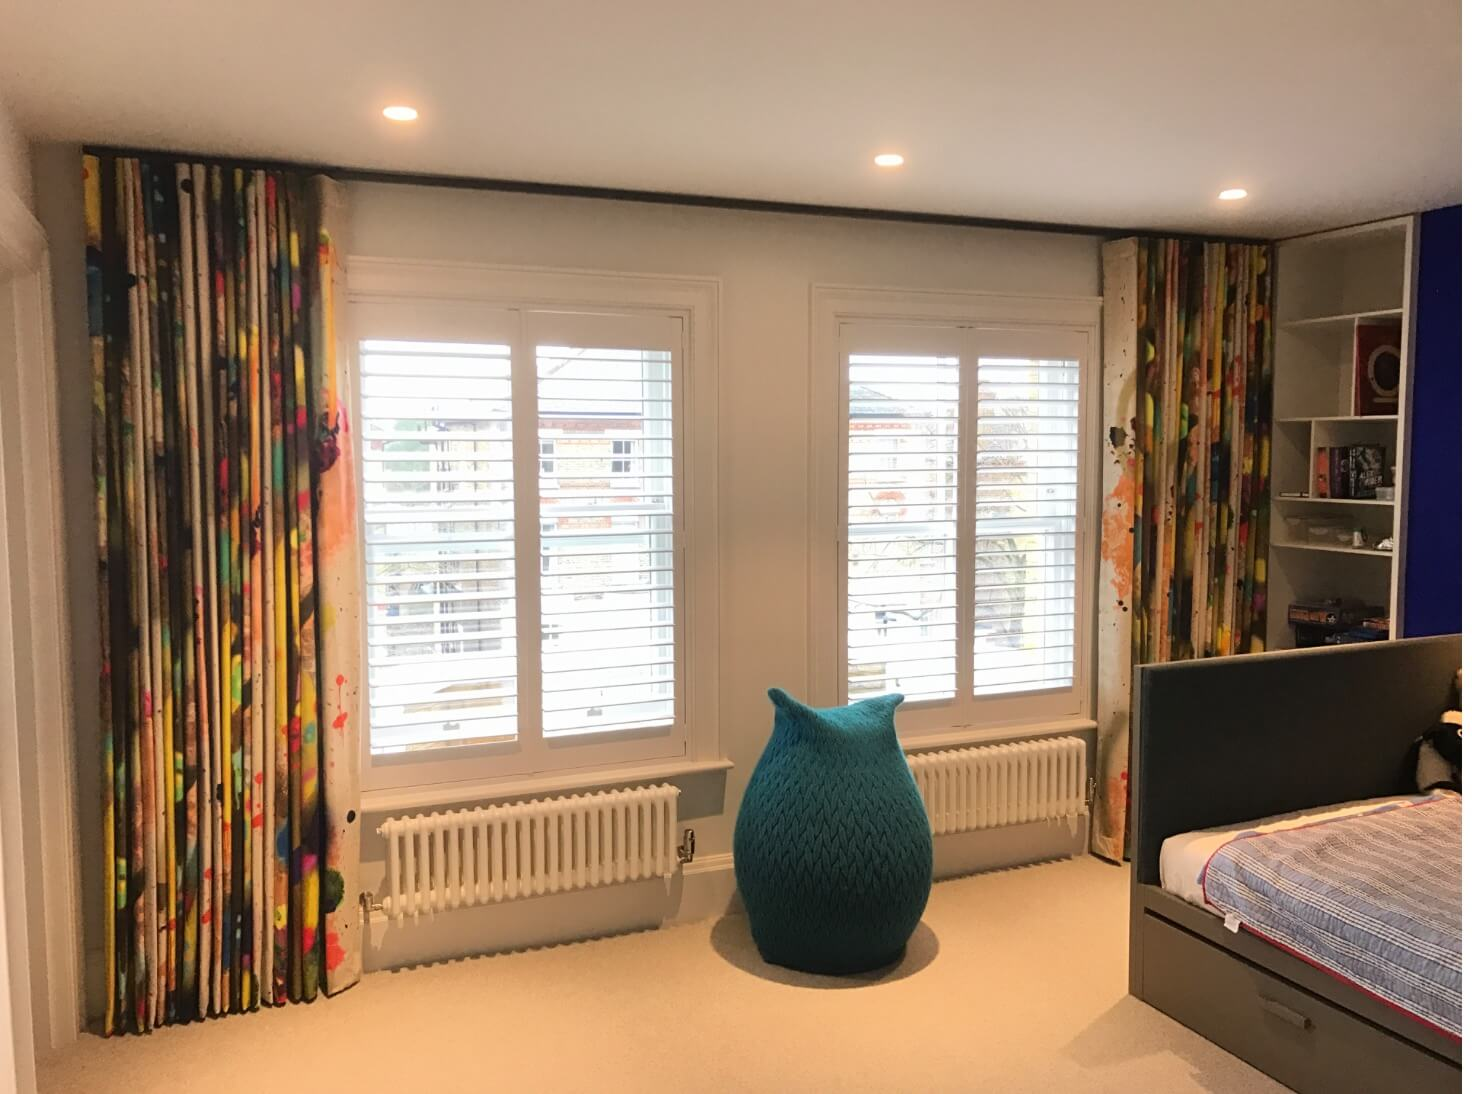 Bespoke wave curtains in colourful fabric